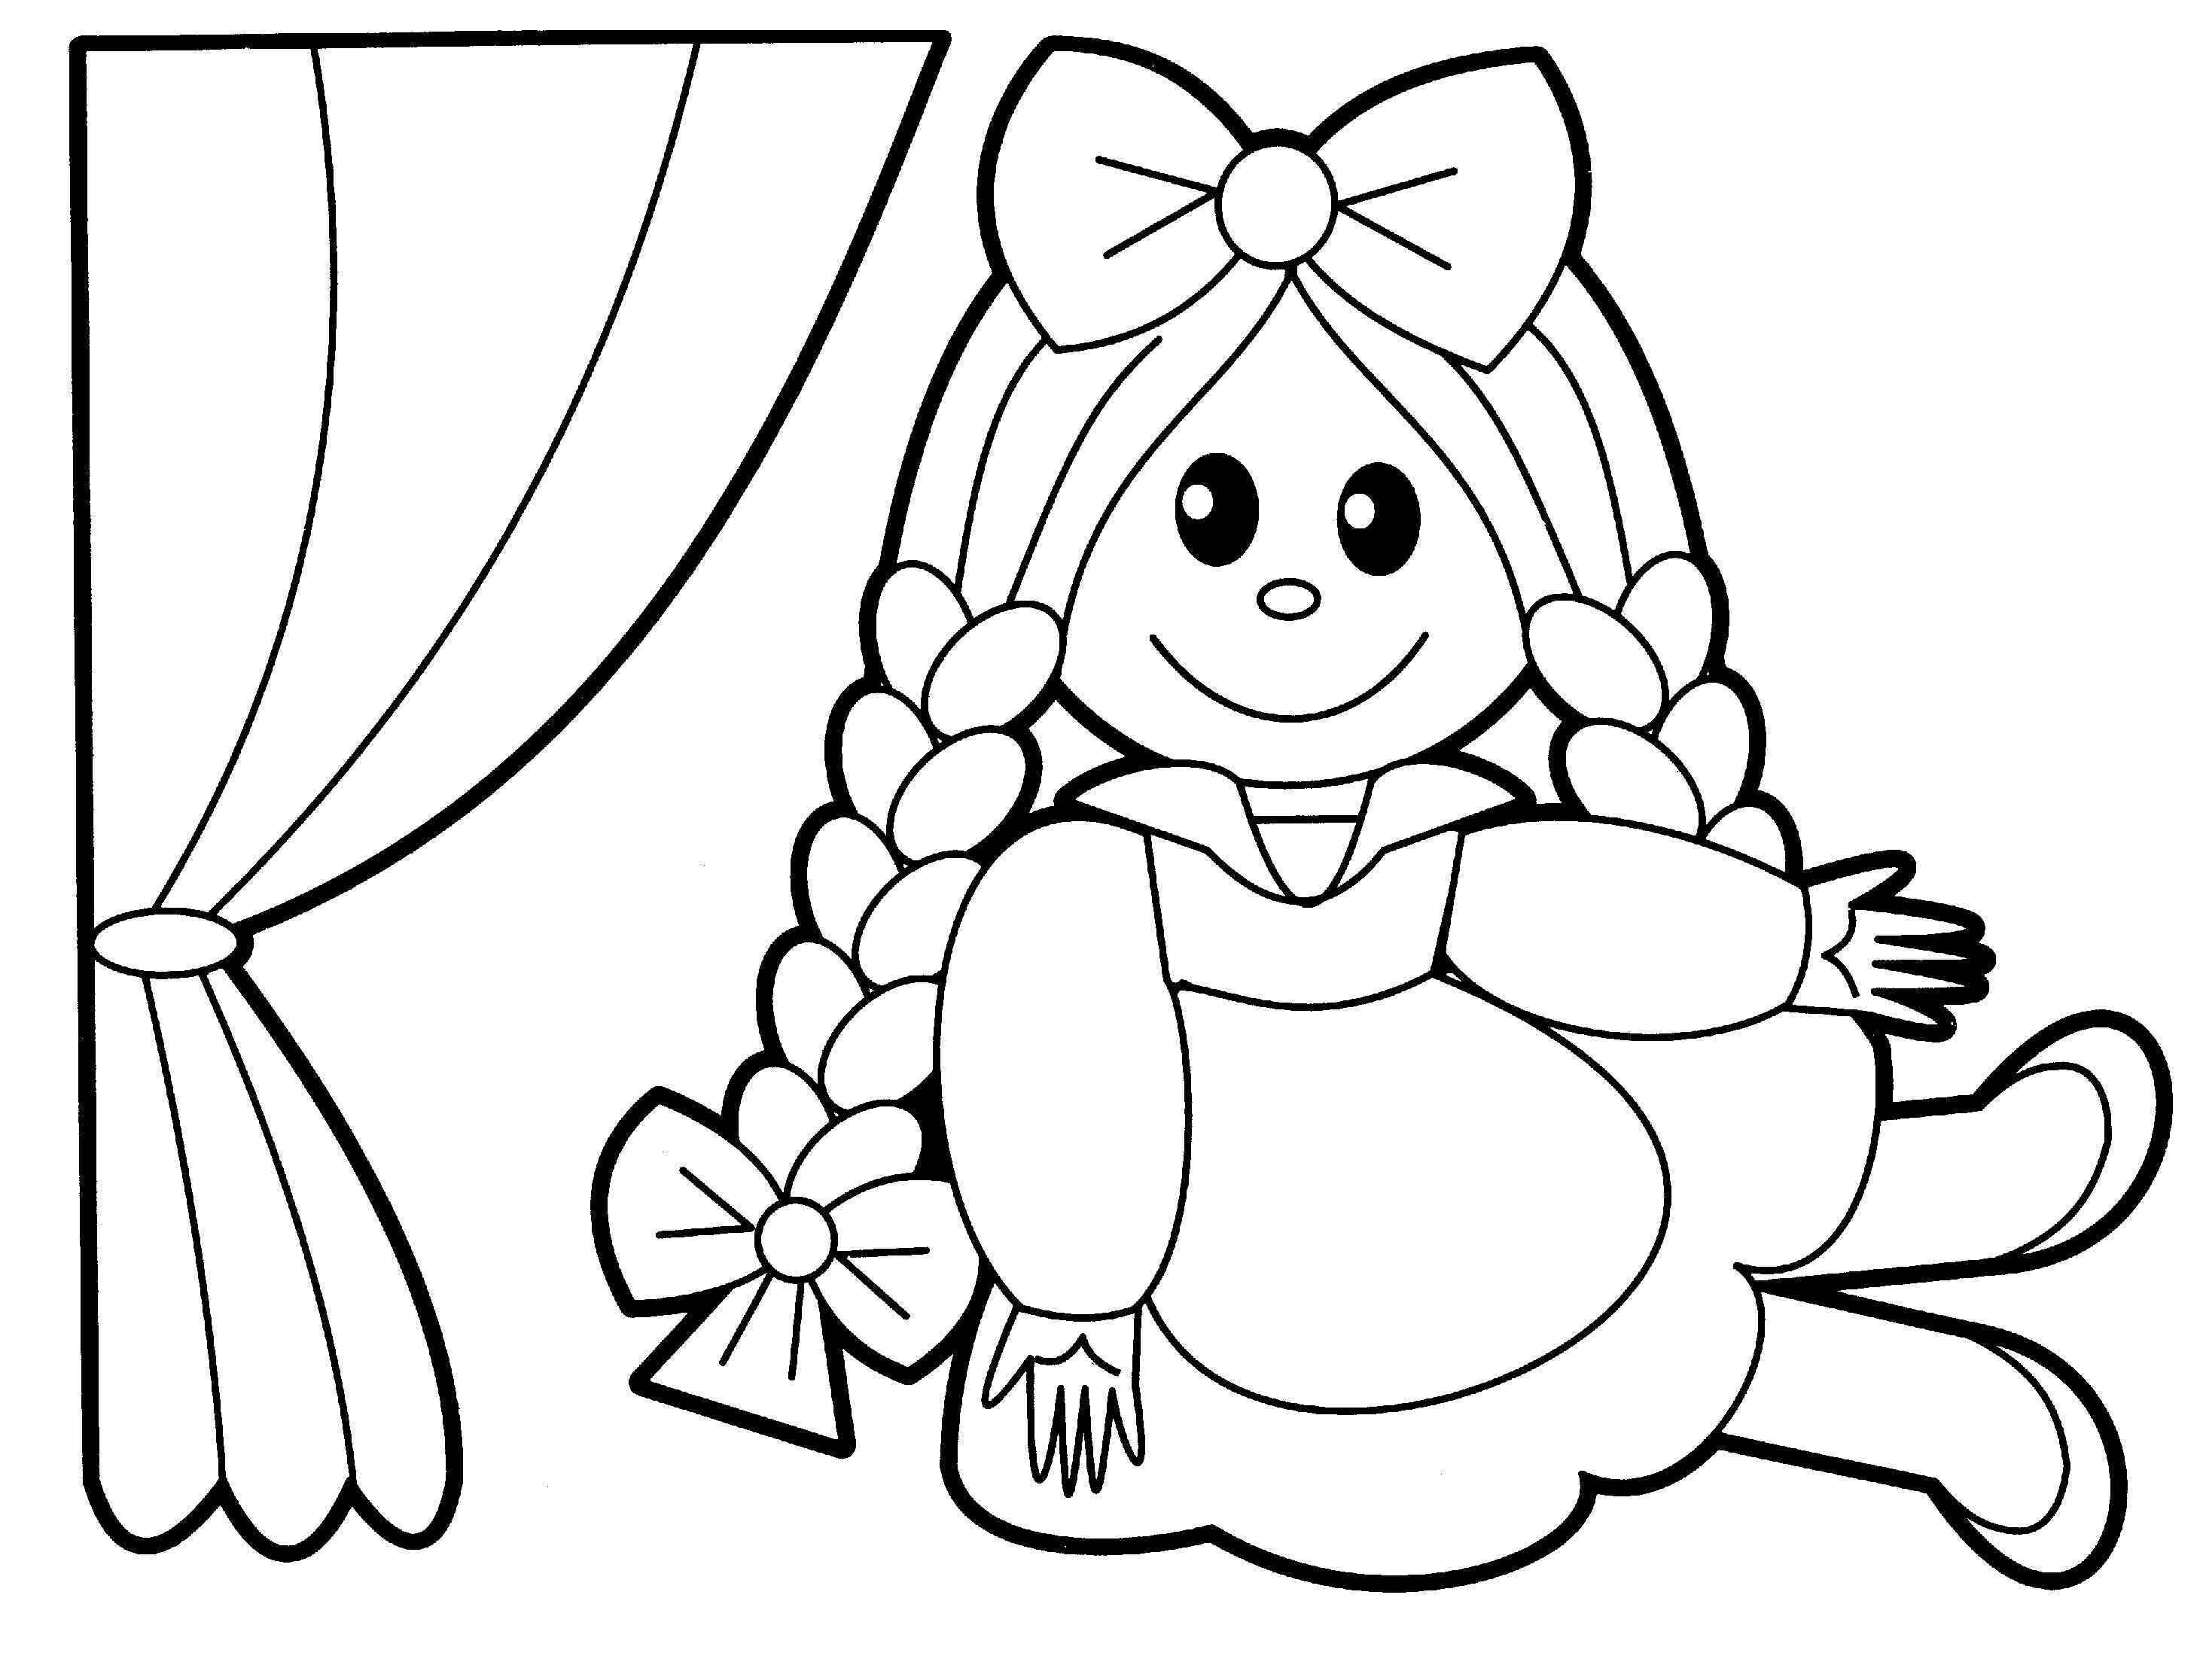 Toys Coloring Pages Best Coloring